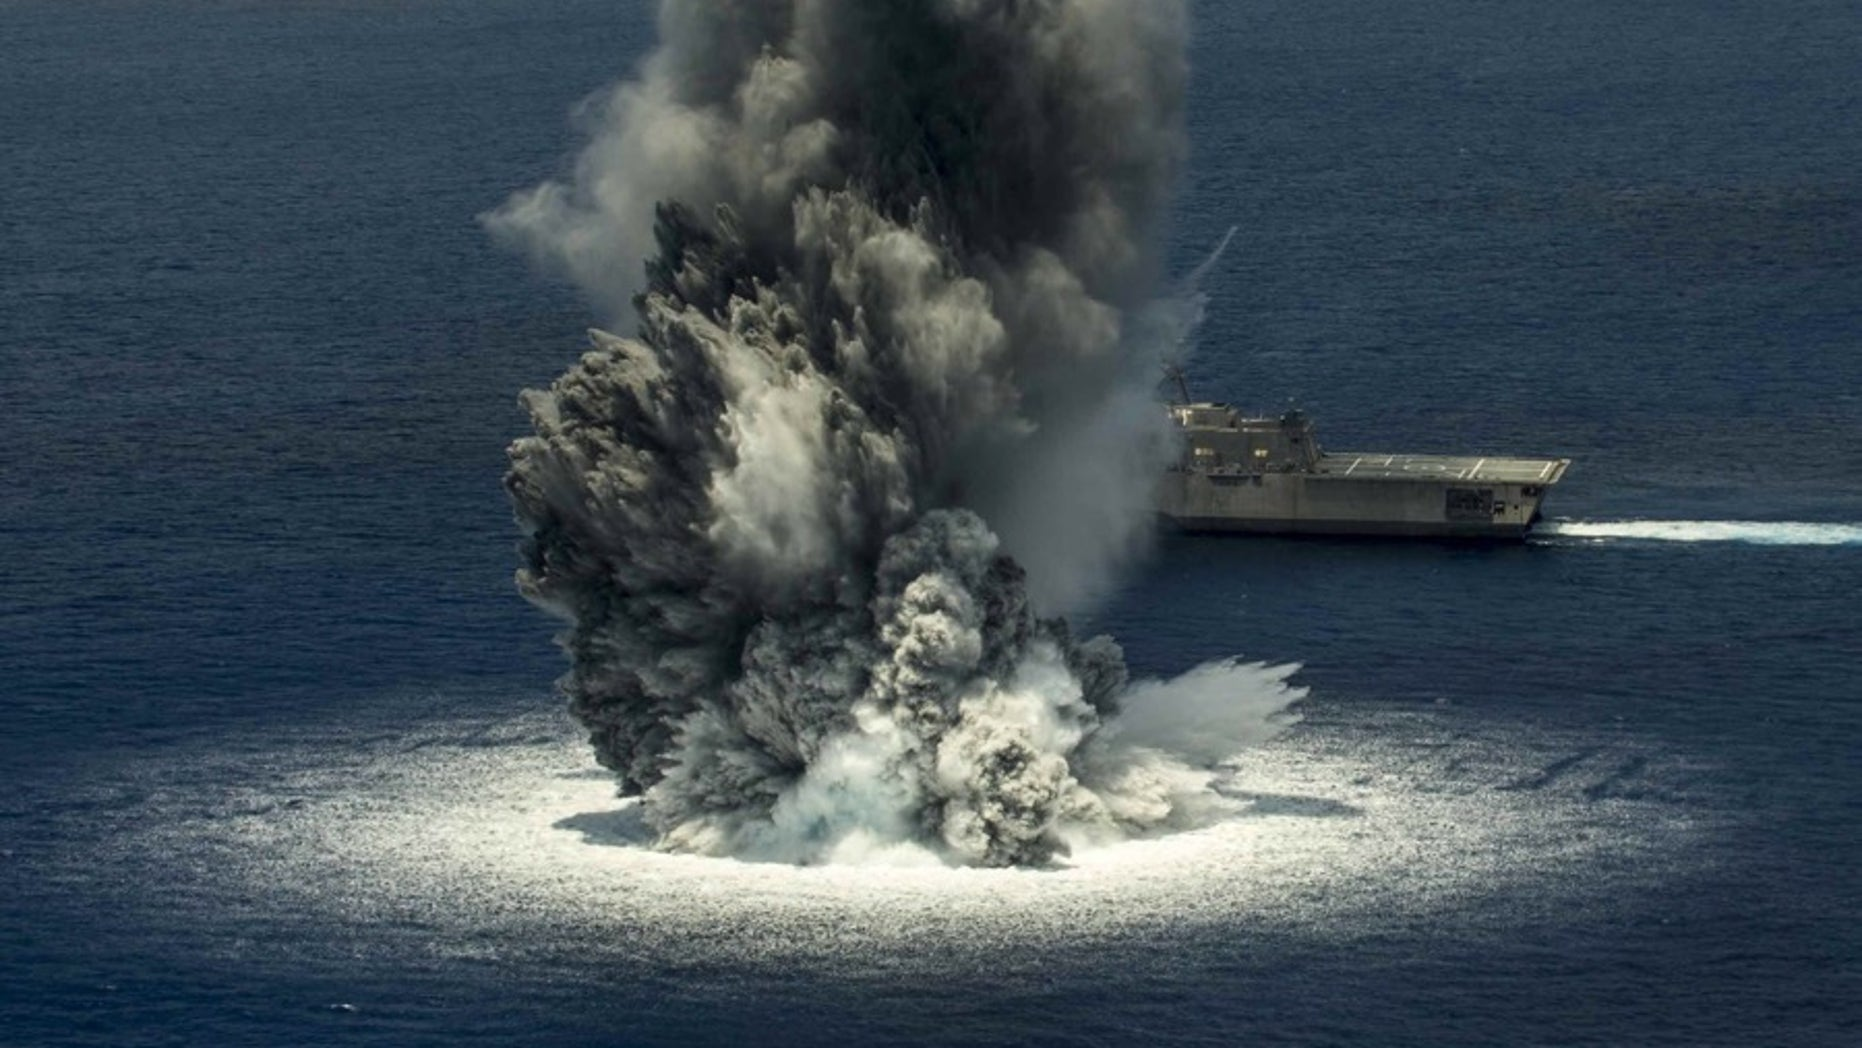 The combat ship, USS Jackson, completed its first of three scheduled shock trials in order to test the ship's ability to withstand the effects of nearby underwater explosion. Apparently, another shock test registered